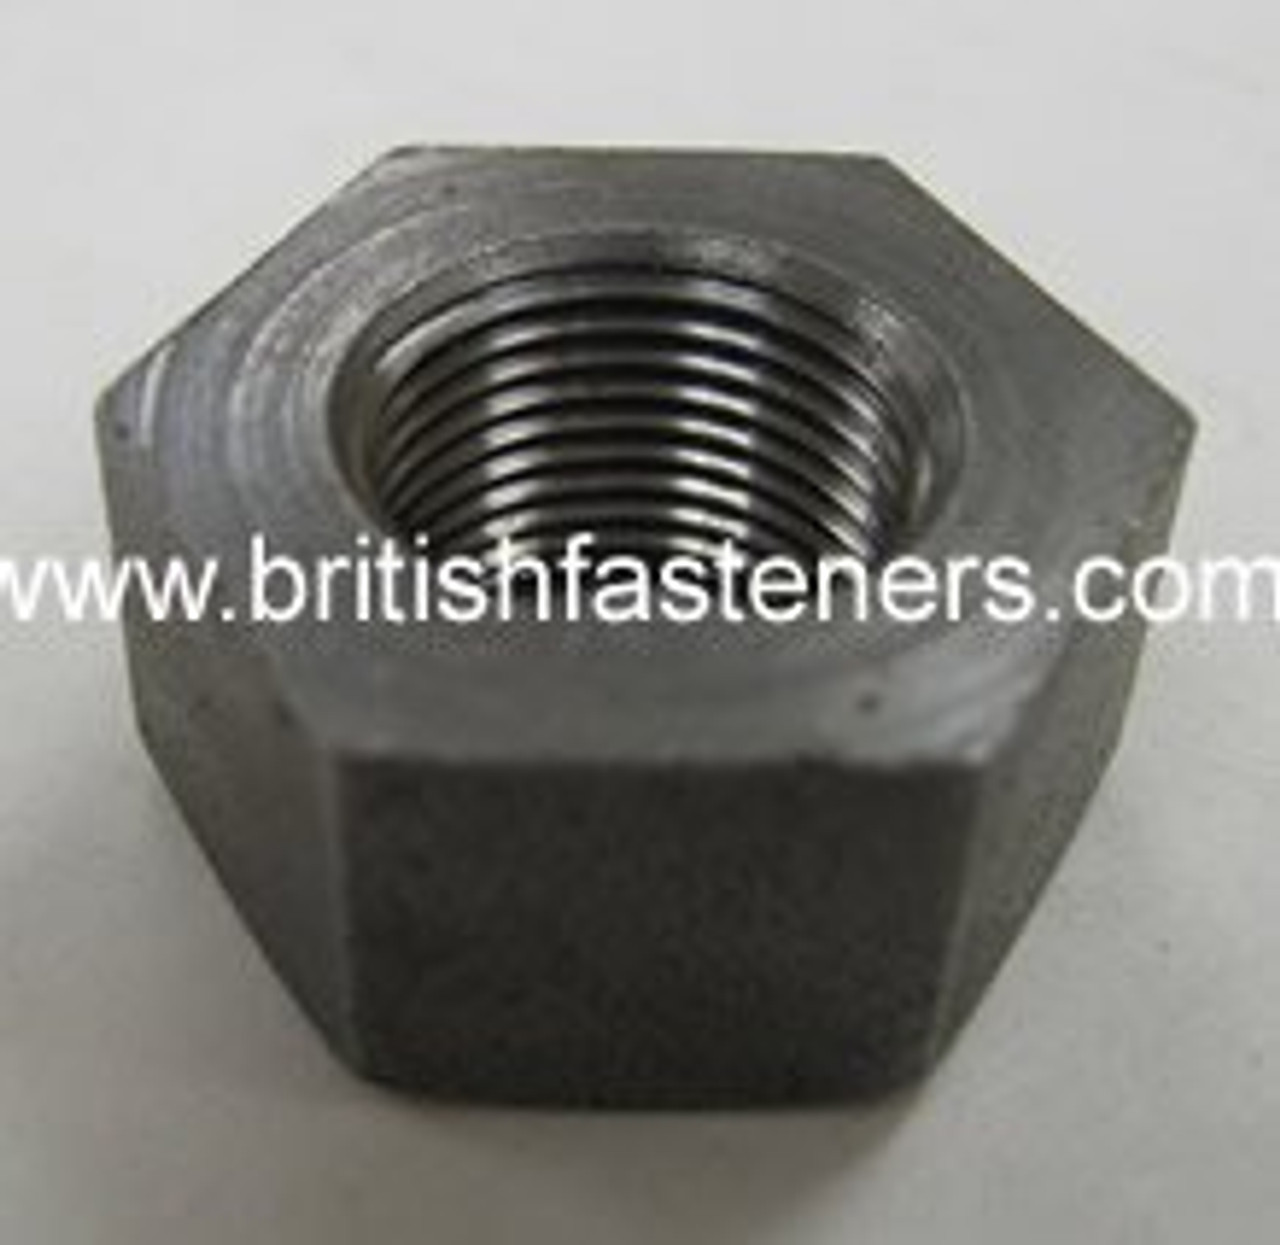 """BSC 5/16"""" - 26 SMALL HEX THIN NUT S/S - (7140A)"""